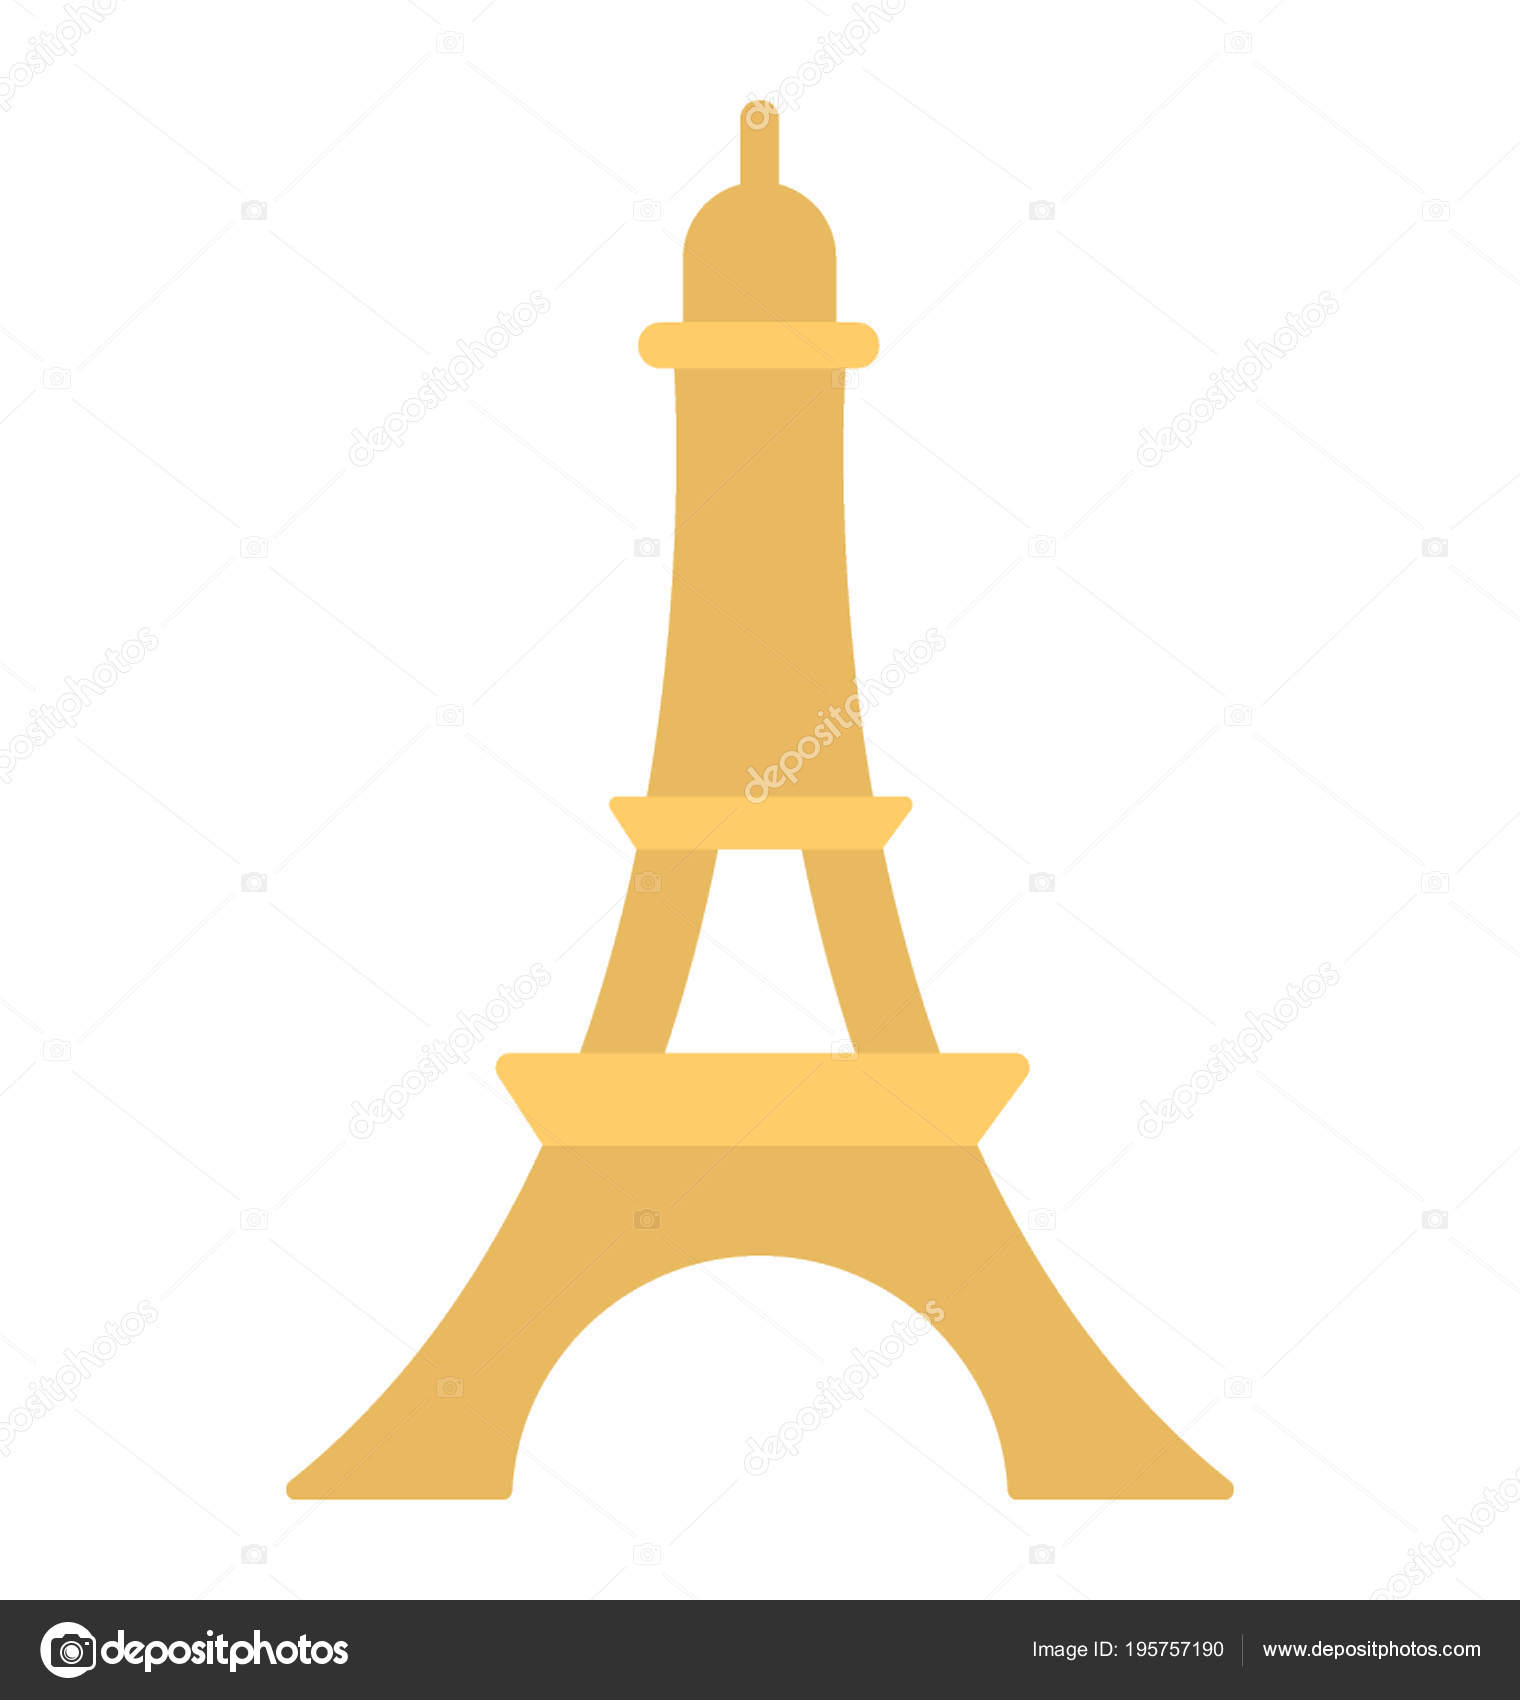 Images Cartoon Eiffel Tower Cartoon Depiction Eiffel Tower Paris France Stock Vector C Creativestall 195757190